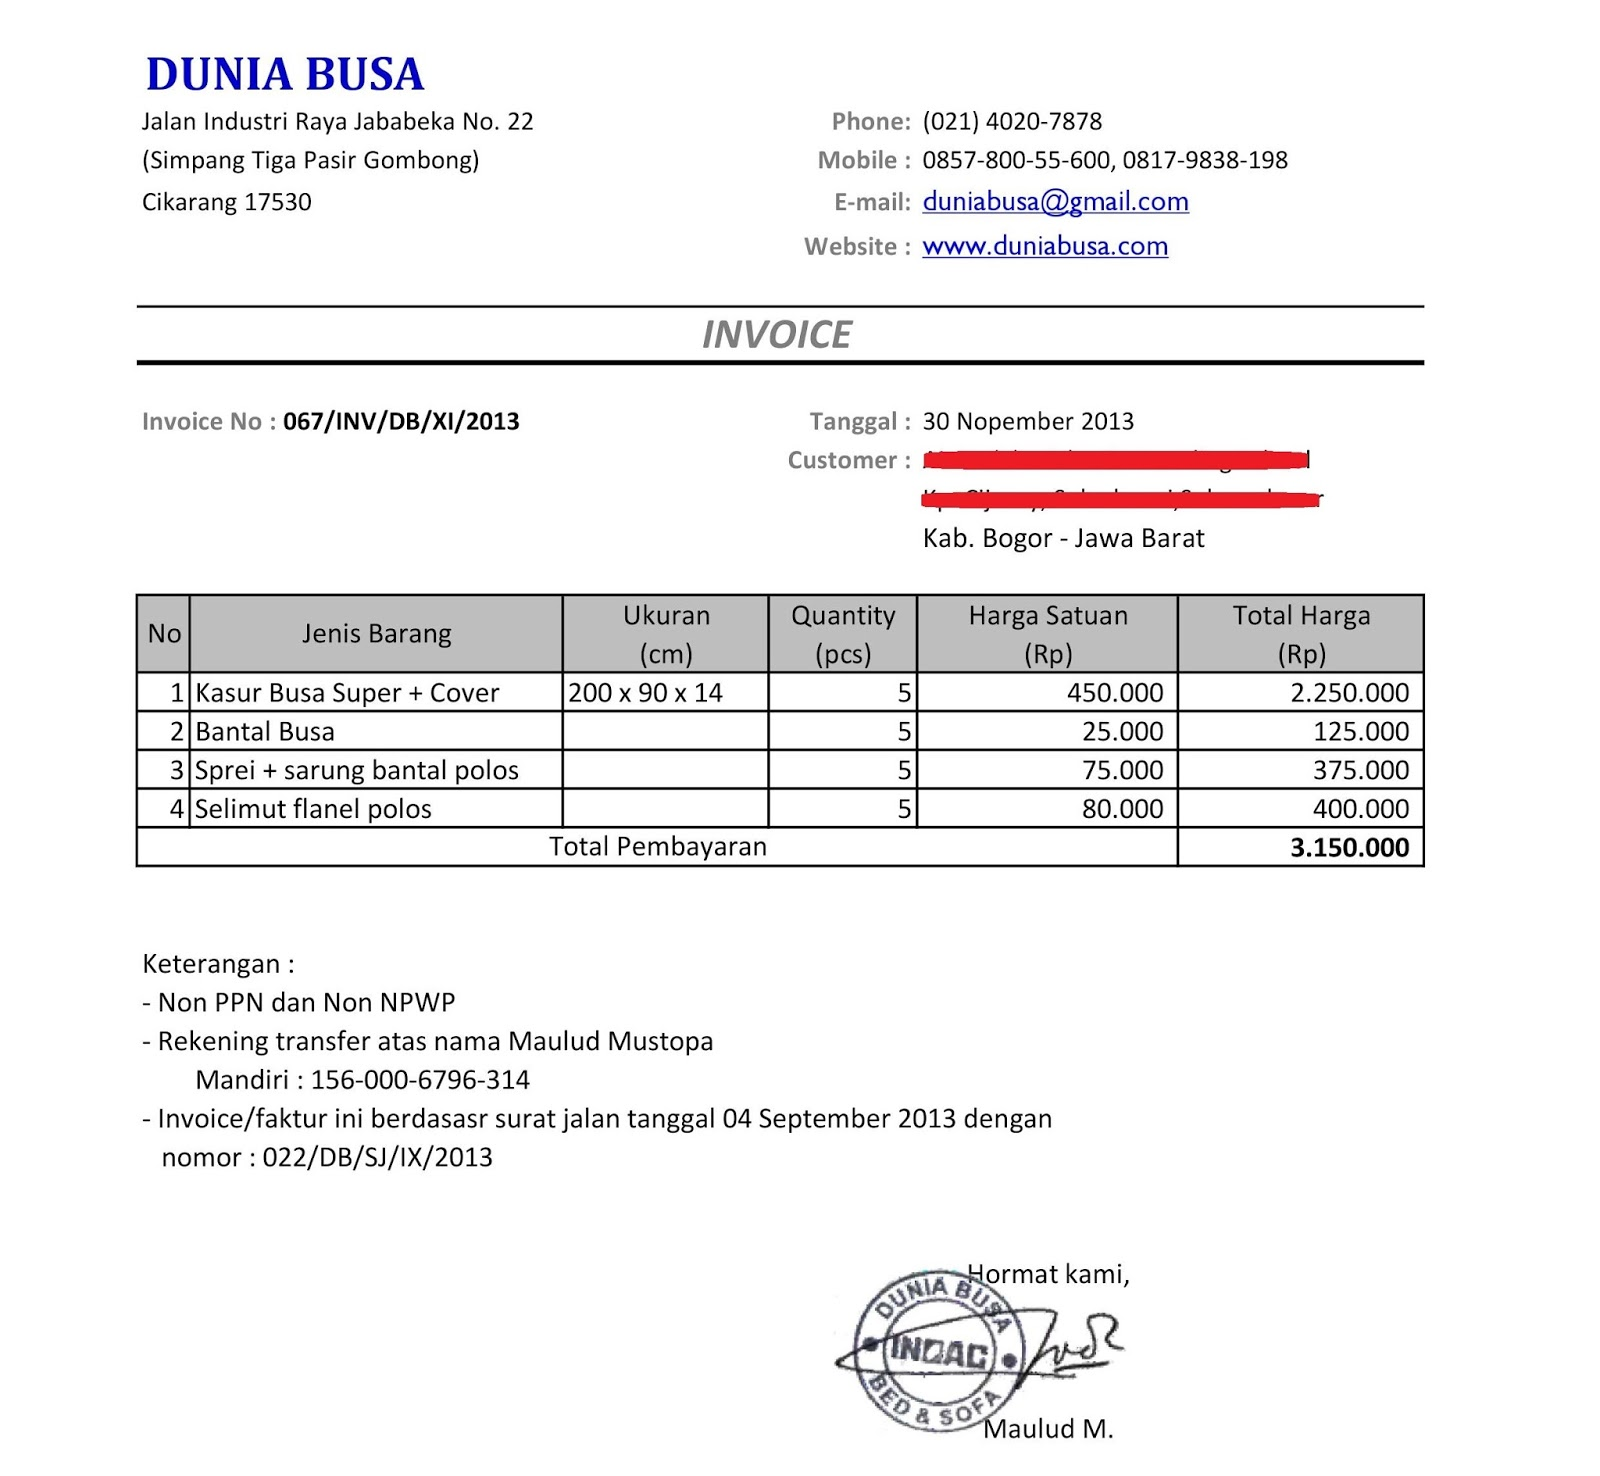 Usdgus  Surprising Free Invoice Online  Create Invoice Online  Invoice Template  With Marvelous Contoh Format Invoice Atau Surat Tagihan  Brankas Arsip  Free Invoice Online With Amazing Proforma Invoice Customs Also Invoice For Ipad In Addition Trucking Invoice Template Free And Sample Invoices In Word As Well As Acura Rdx Invoice Price Additionally Simple Invoices Templates From Sklepco With Usdgus  Marvelous Free Invoice Online  Create Invoice Online  Invoice Template  With Amazing Contoh Format Invoice Atau Surat Tagihan  Brankas Arsip  Free Invoice Online And Surprising Proforma Invoice Customs Also Invoice For Ipad In Addition Trucking Invoice Template Free From Sklepco